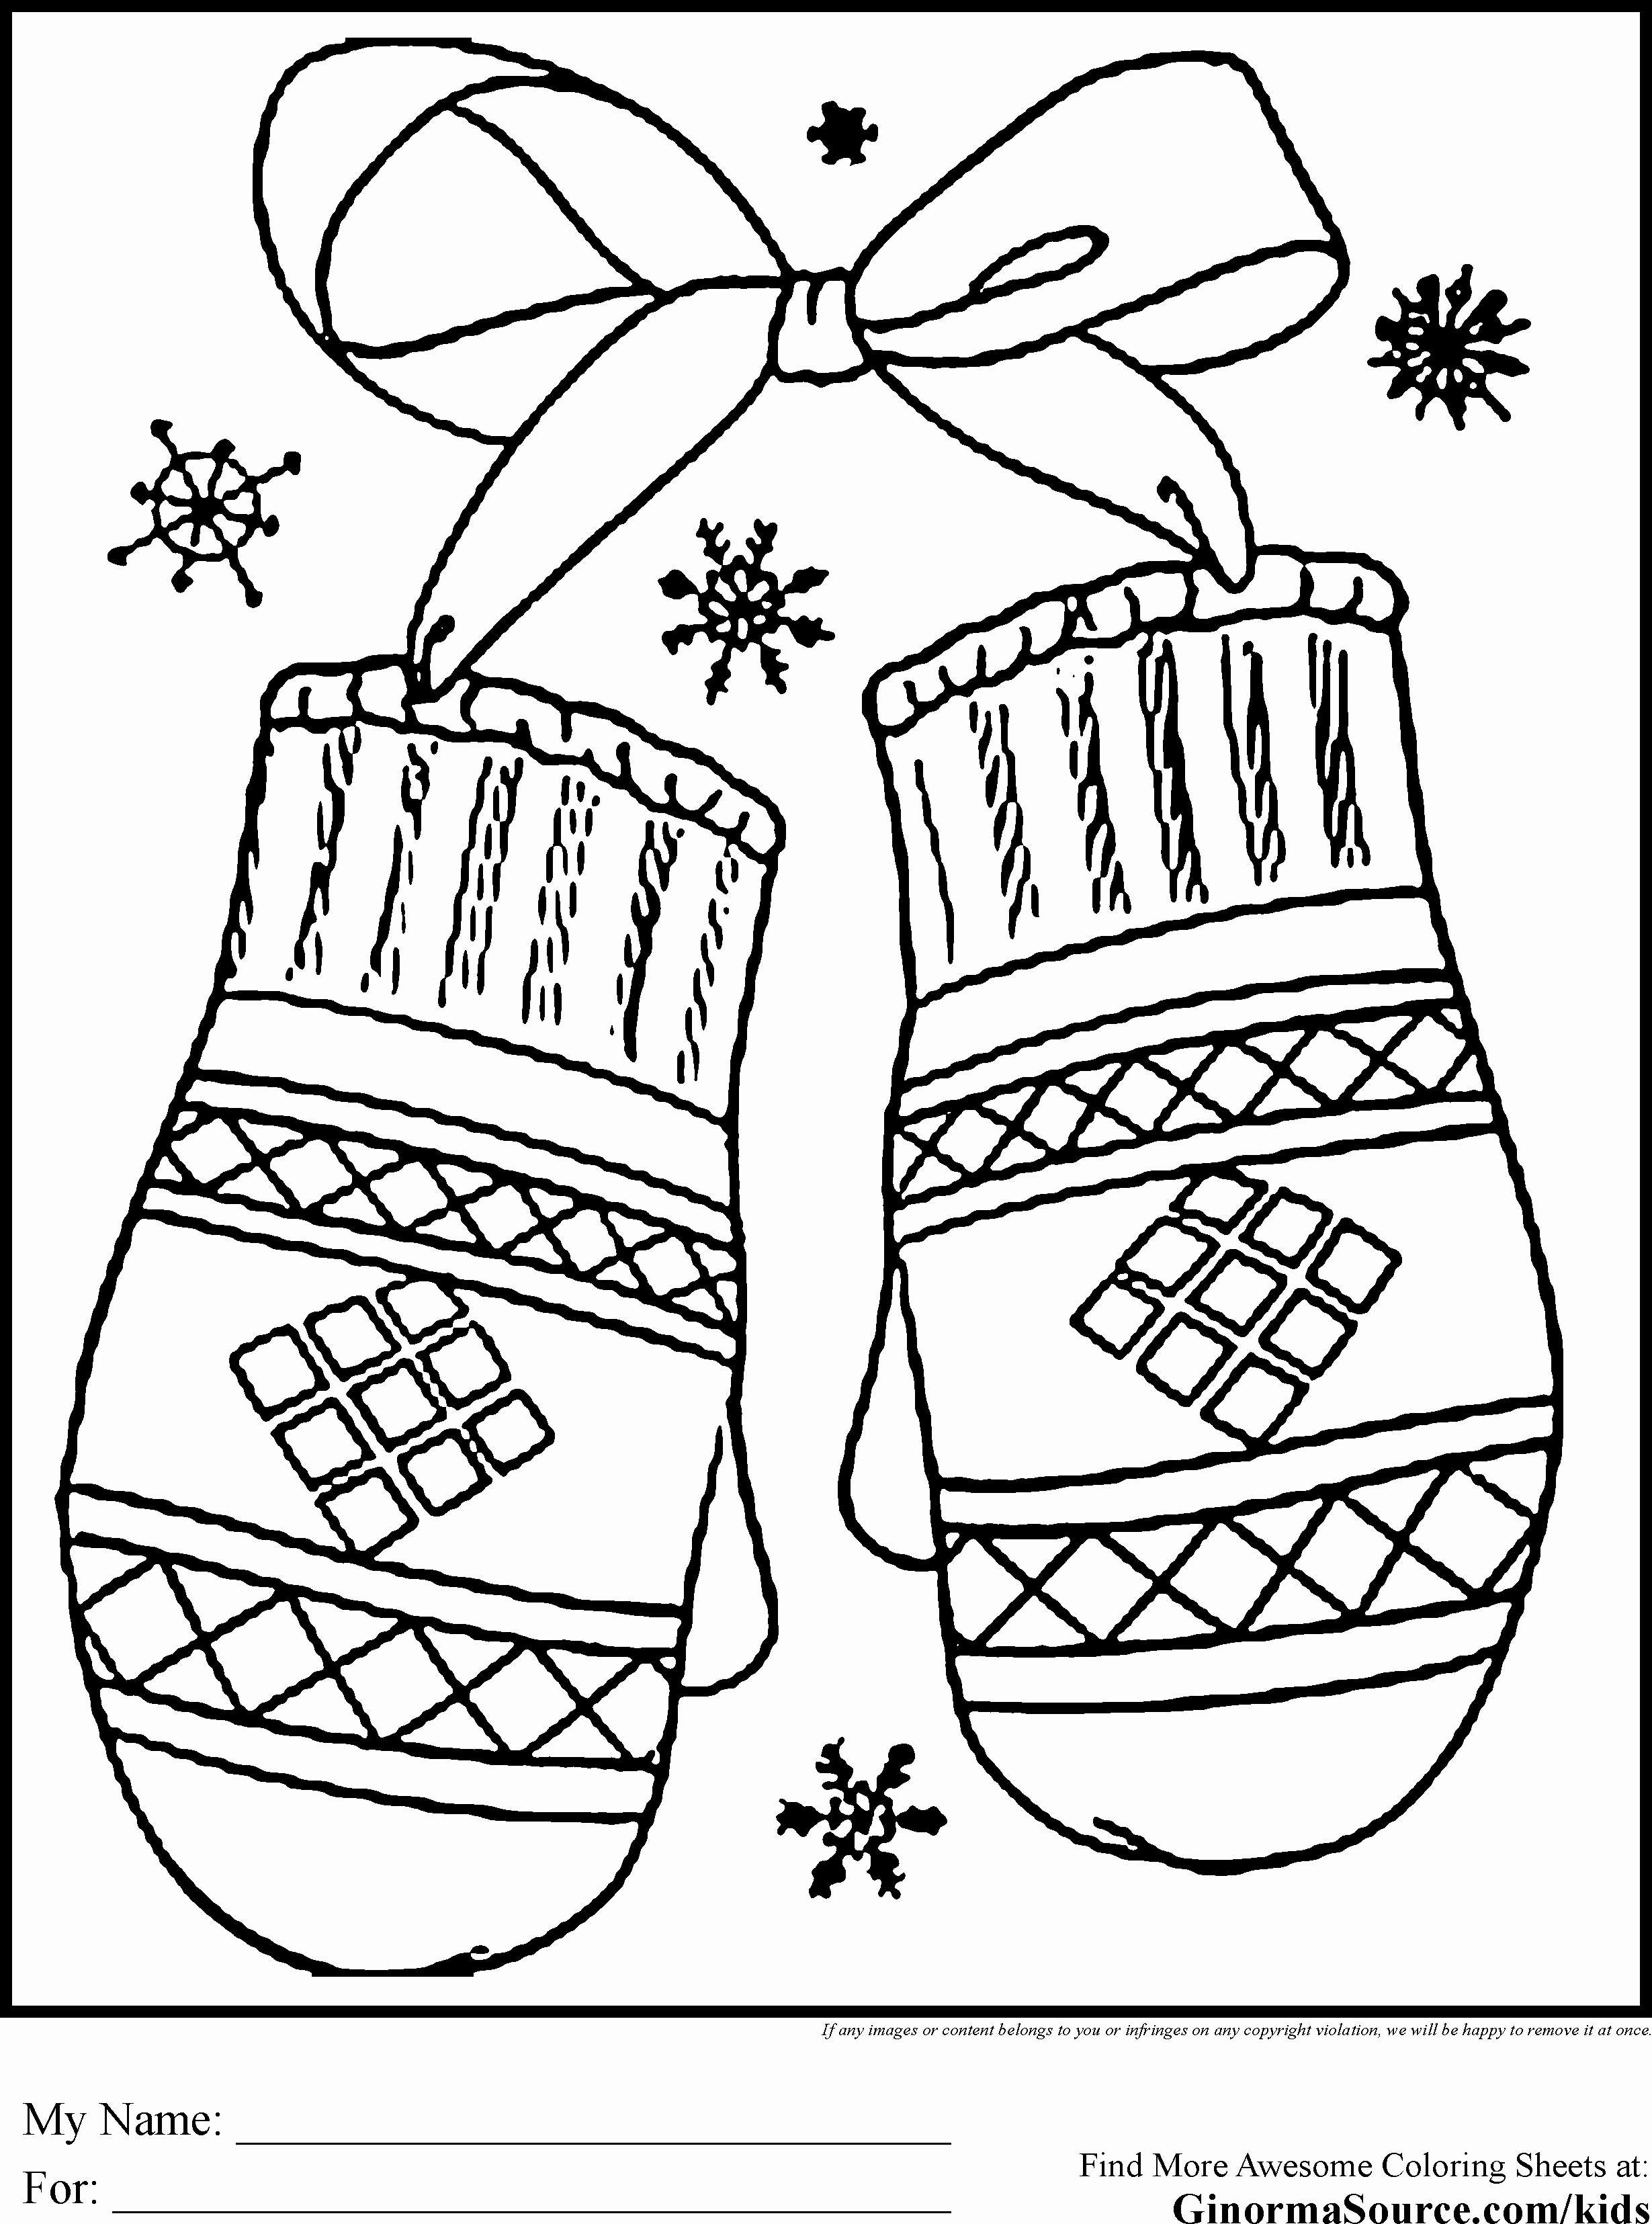 Free Printable Christmas Coloring Pages And Activities With Happy Holidays